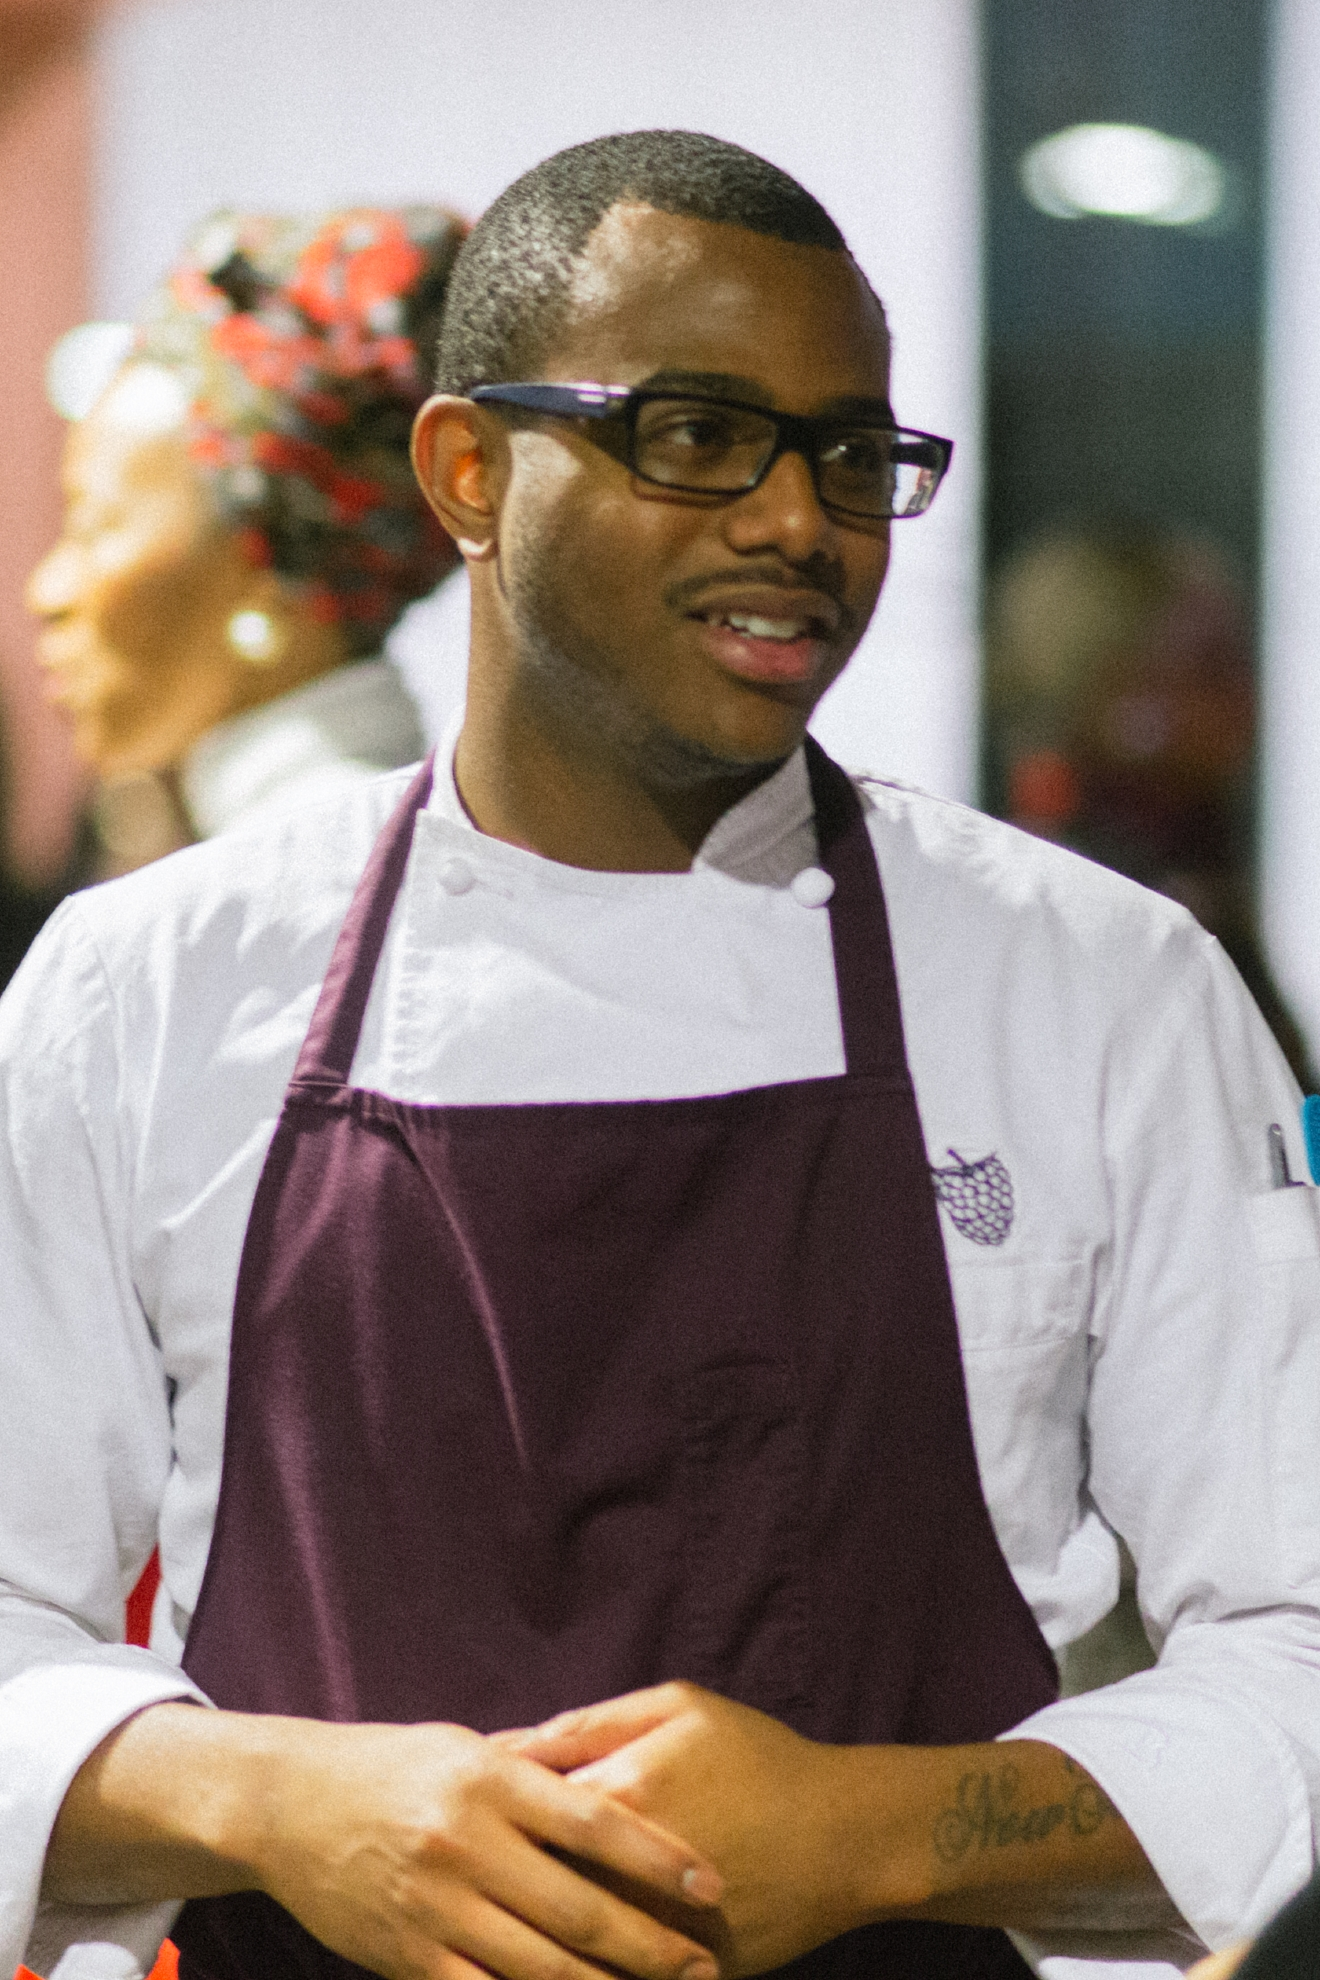 Chef Kwame Onwuachi, whose high-end prix fixe restaurant The Shaw Bijou opens in November, created a four-course meal designed to explore different eras and regions of African American cuisine. (Image: Robert Chicoine)